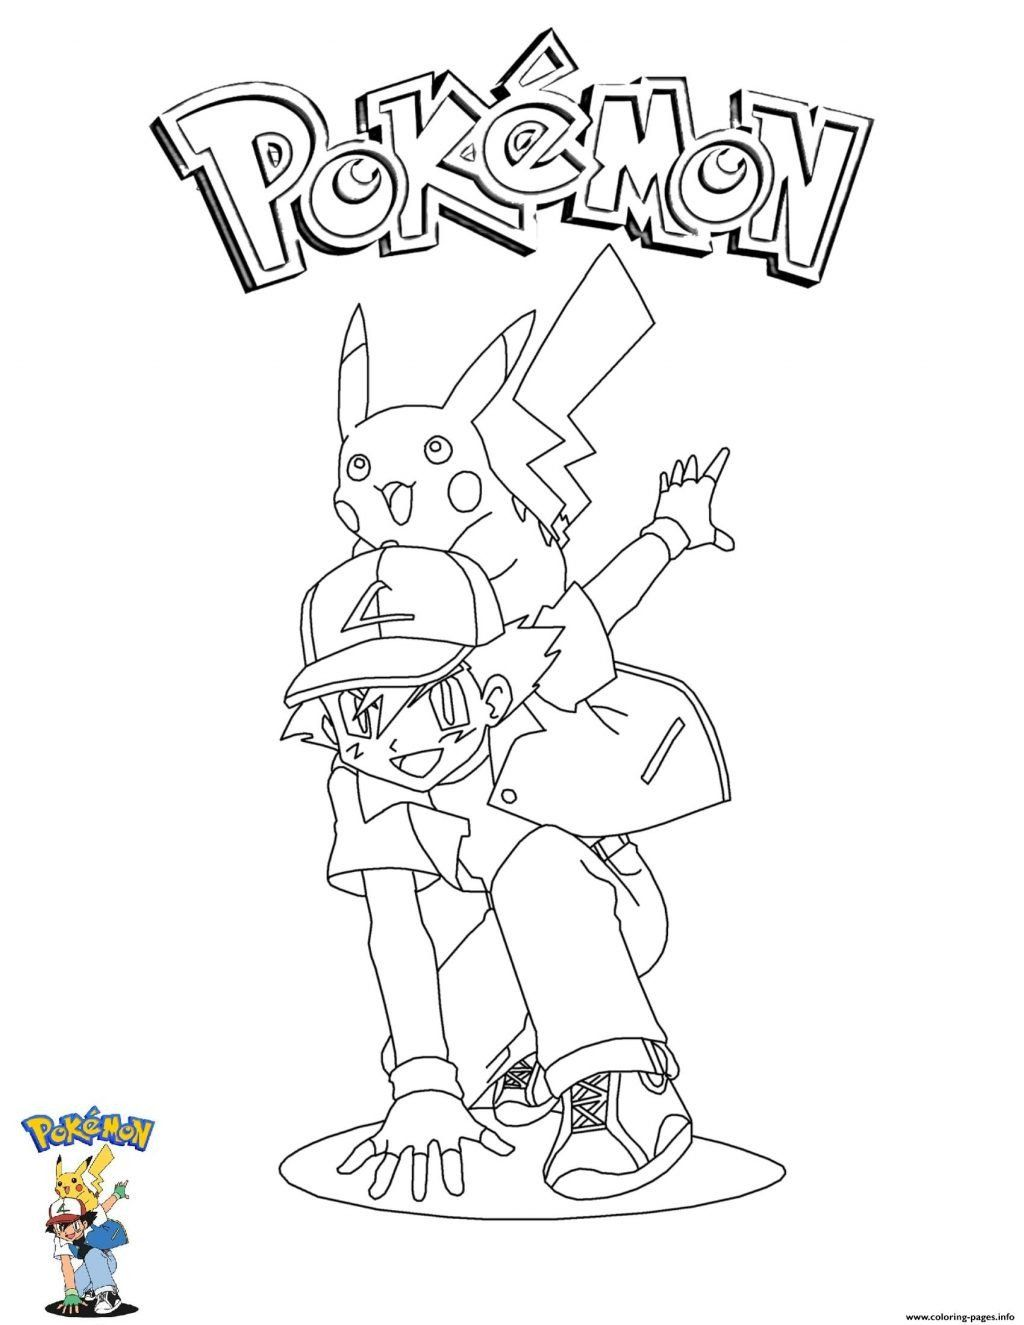 31 Luxury Legendary Pokemon Coloring Pages in 2020